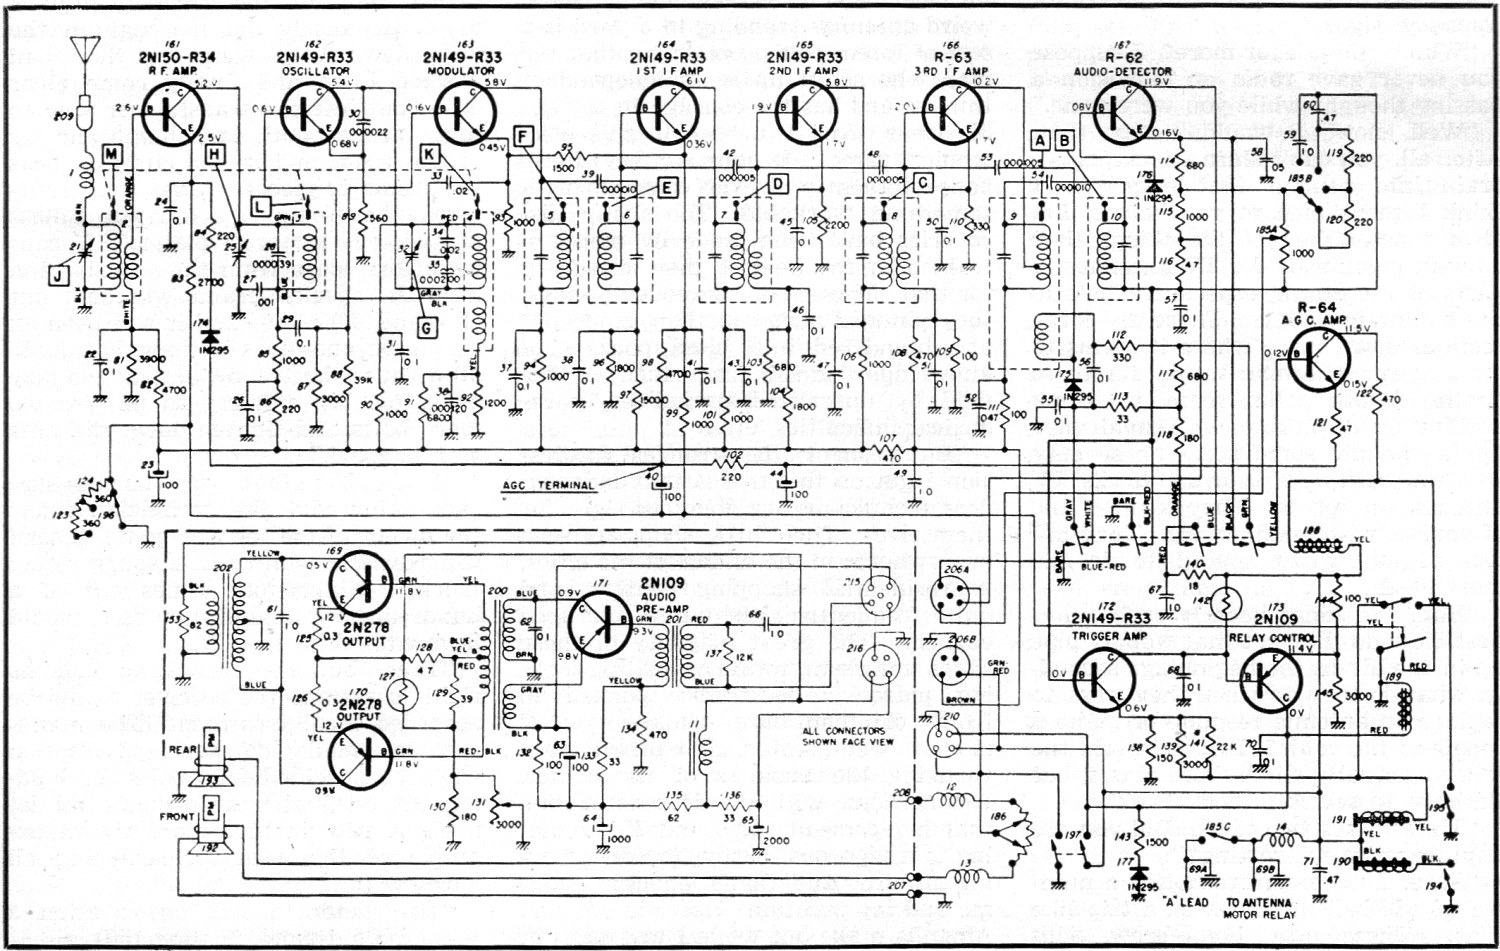 Diagrammes as well Kicker Cx300 1 Wiring Diagram further Parts Diagram For Kenmore Washer likewise M7r213 moreover 6er92 Recently Purchased John Deere 332 Restore Plastic. on amp wiring diagram